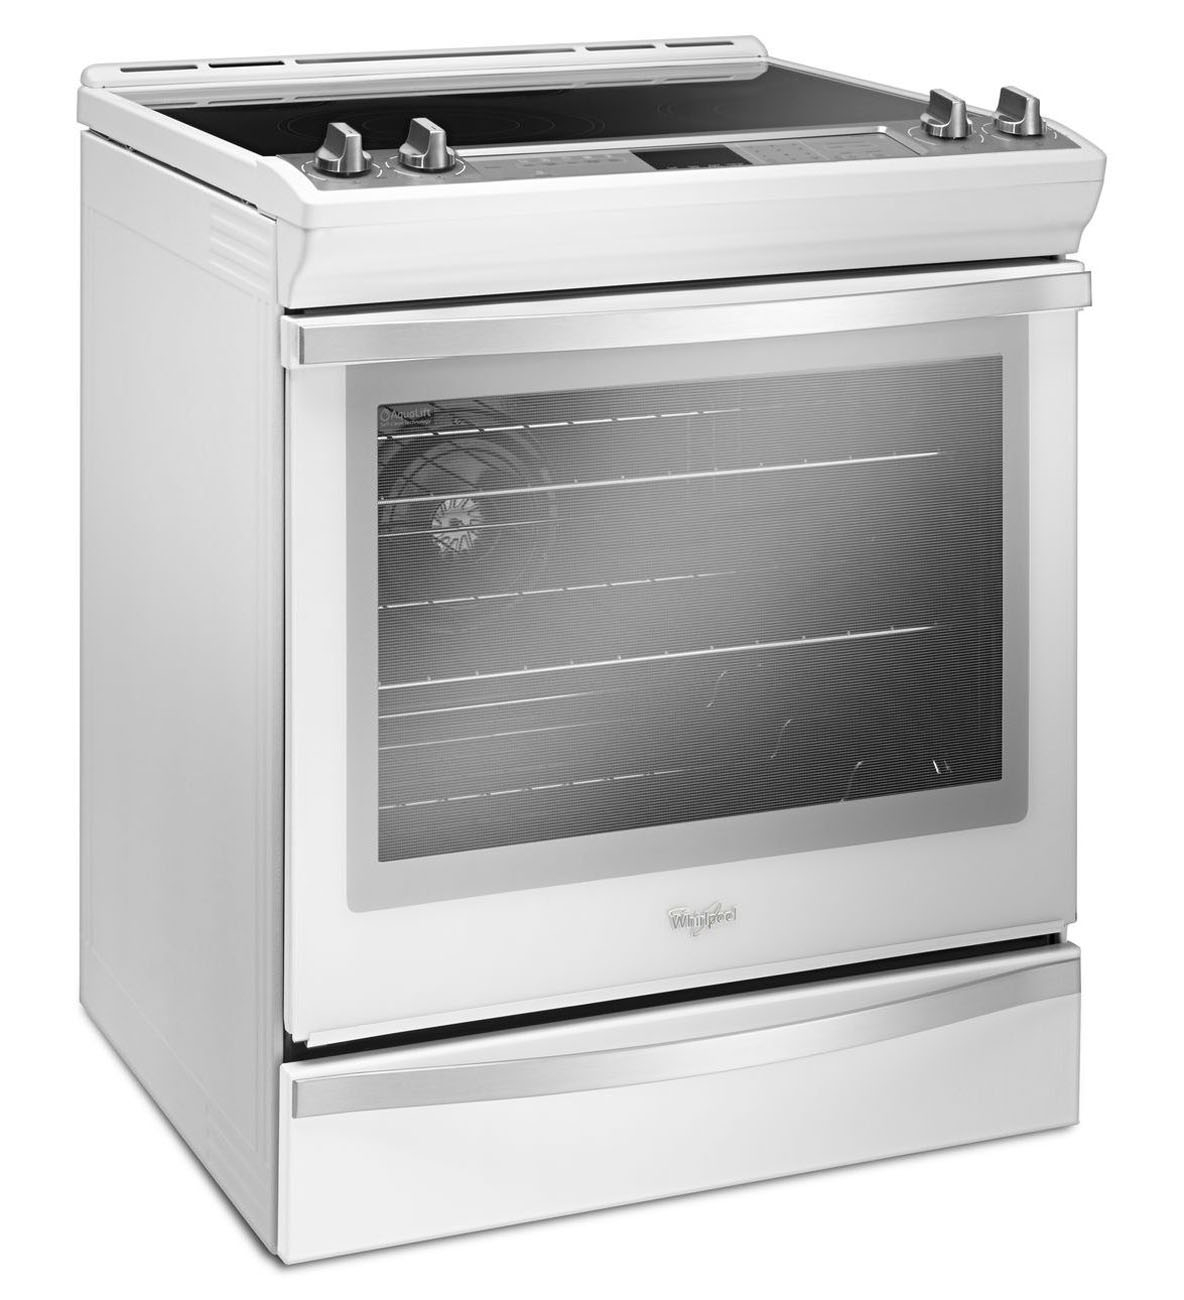 Whirlpool white ice electric range reviews - Main Image 1